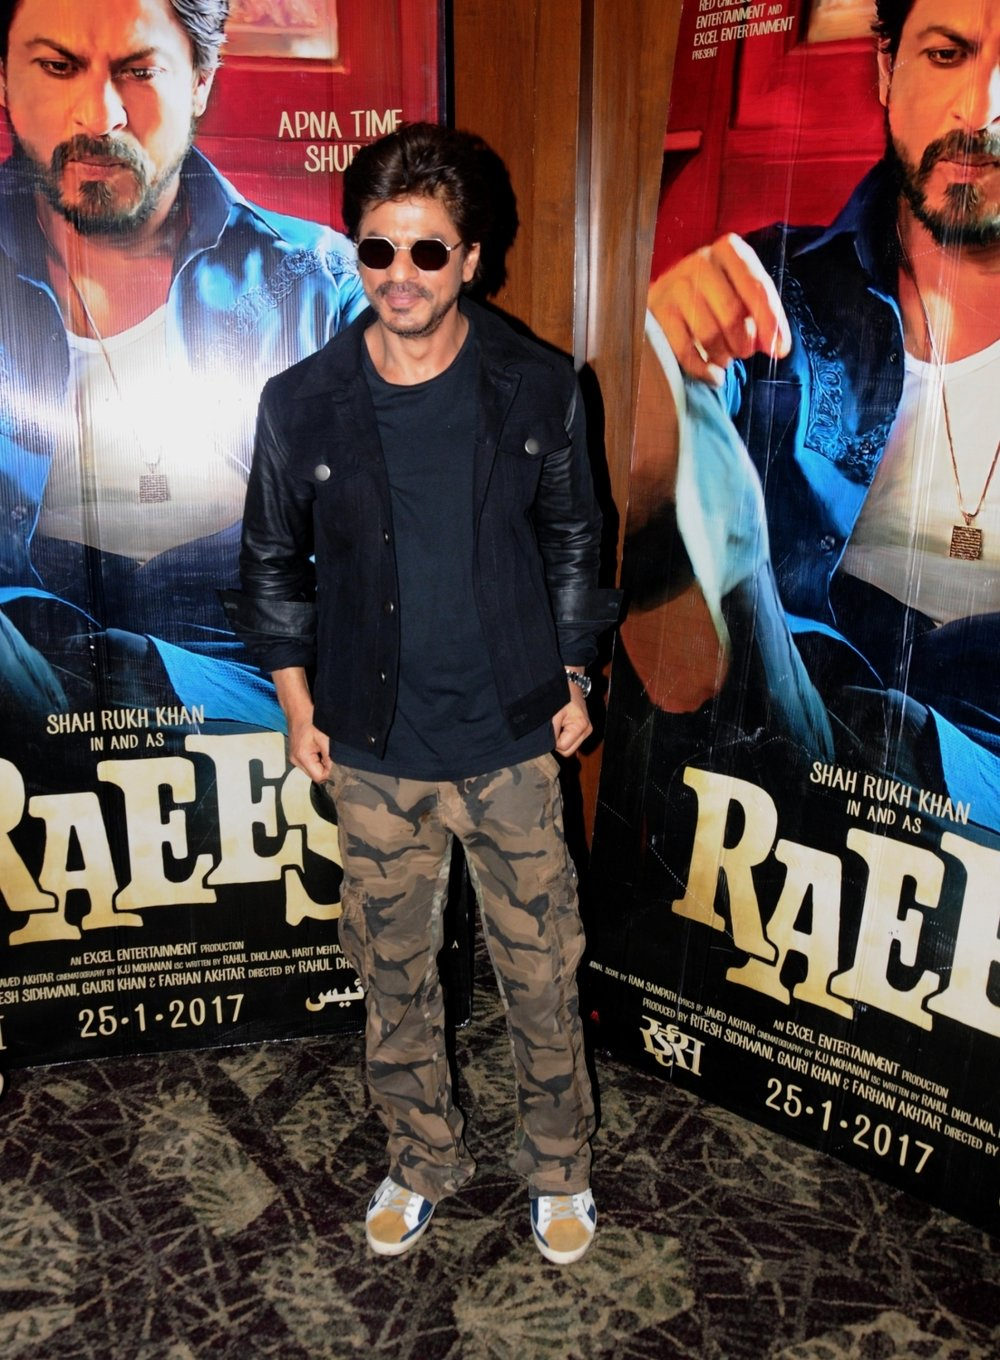 """Amritsar: Actor Shah Rukh Khan during a programme organised to promote """"Raees"""" in Amritsar on Jan 31, 2017. (Photo: IANS)"""